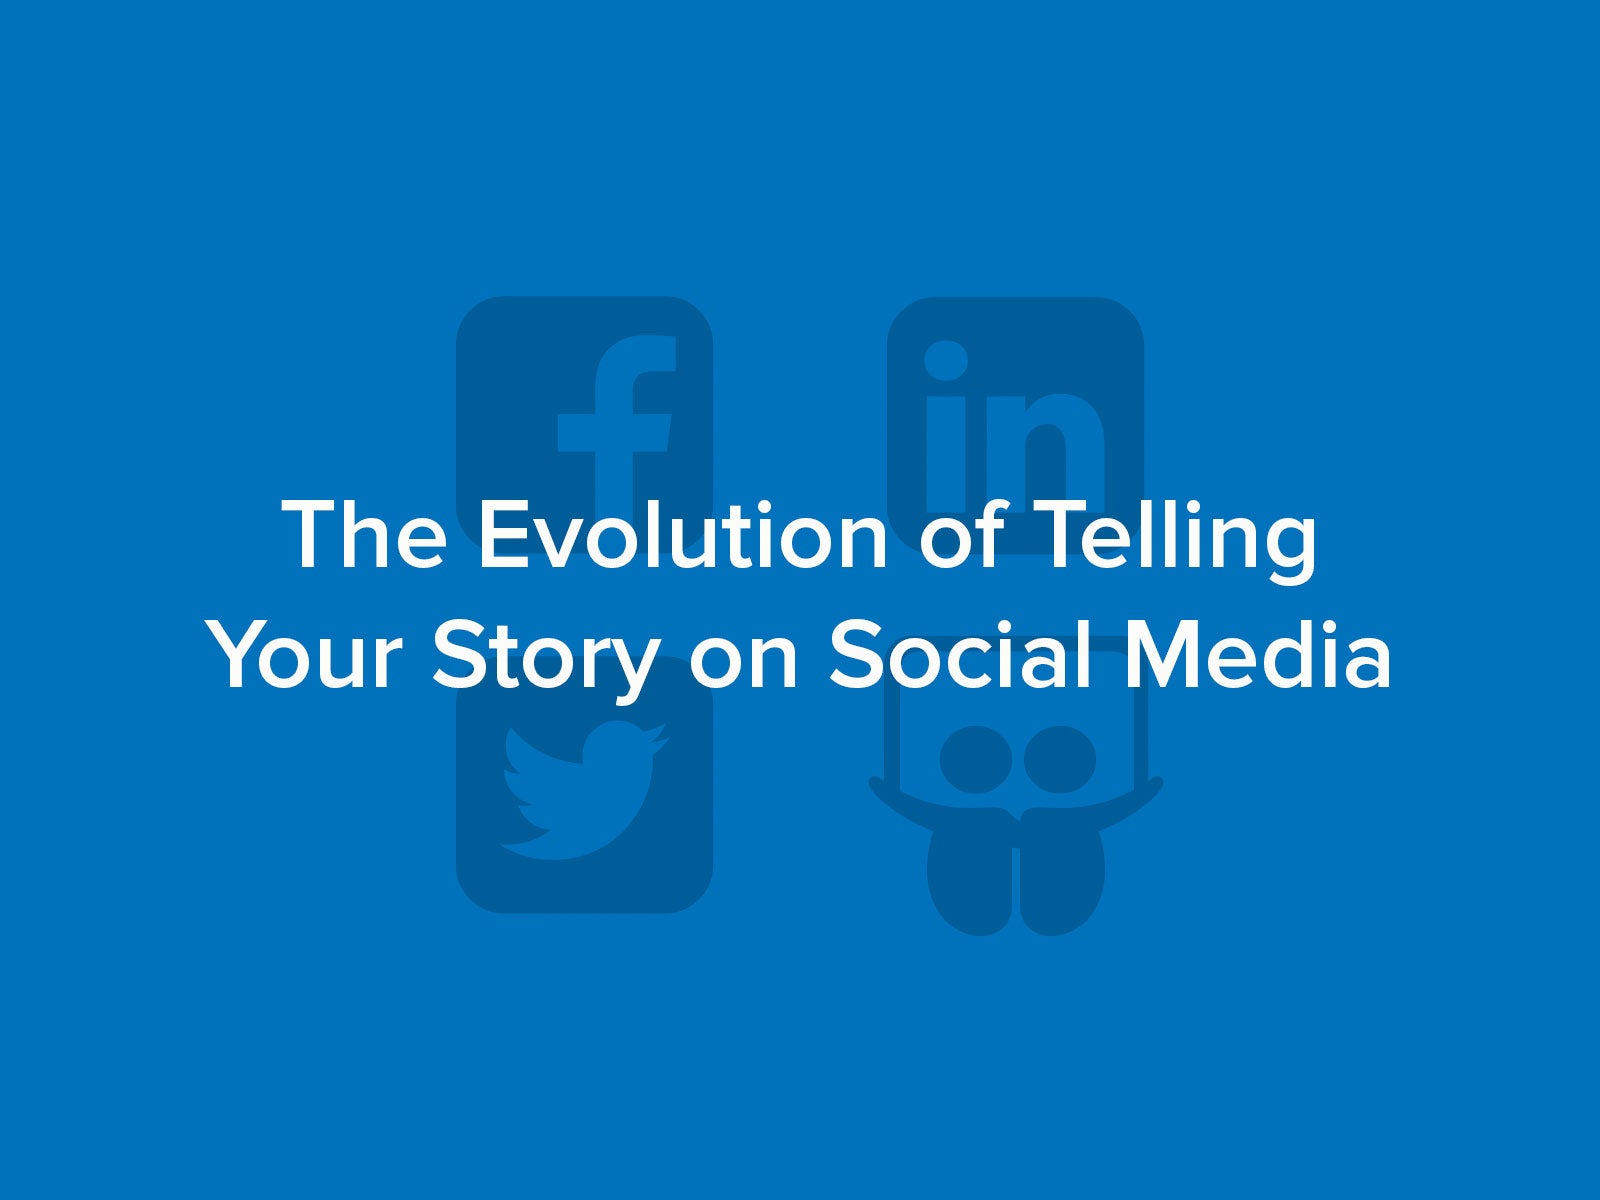 The Evolution of Telling Your Story on Social Media